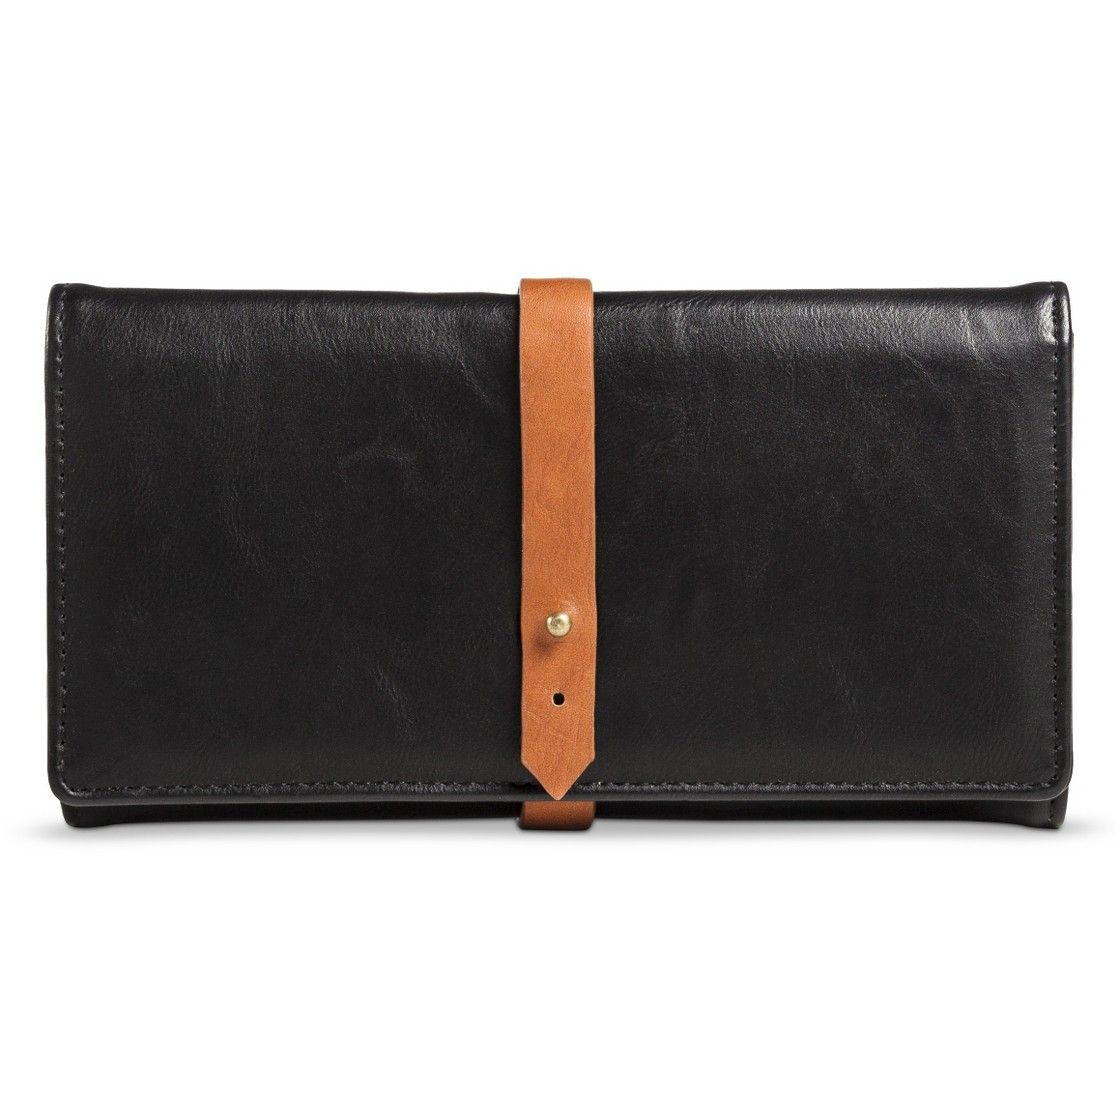 Women's Solid Wallet with Wrap Around Strap - Black